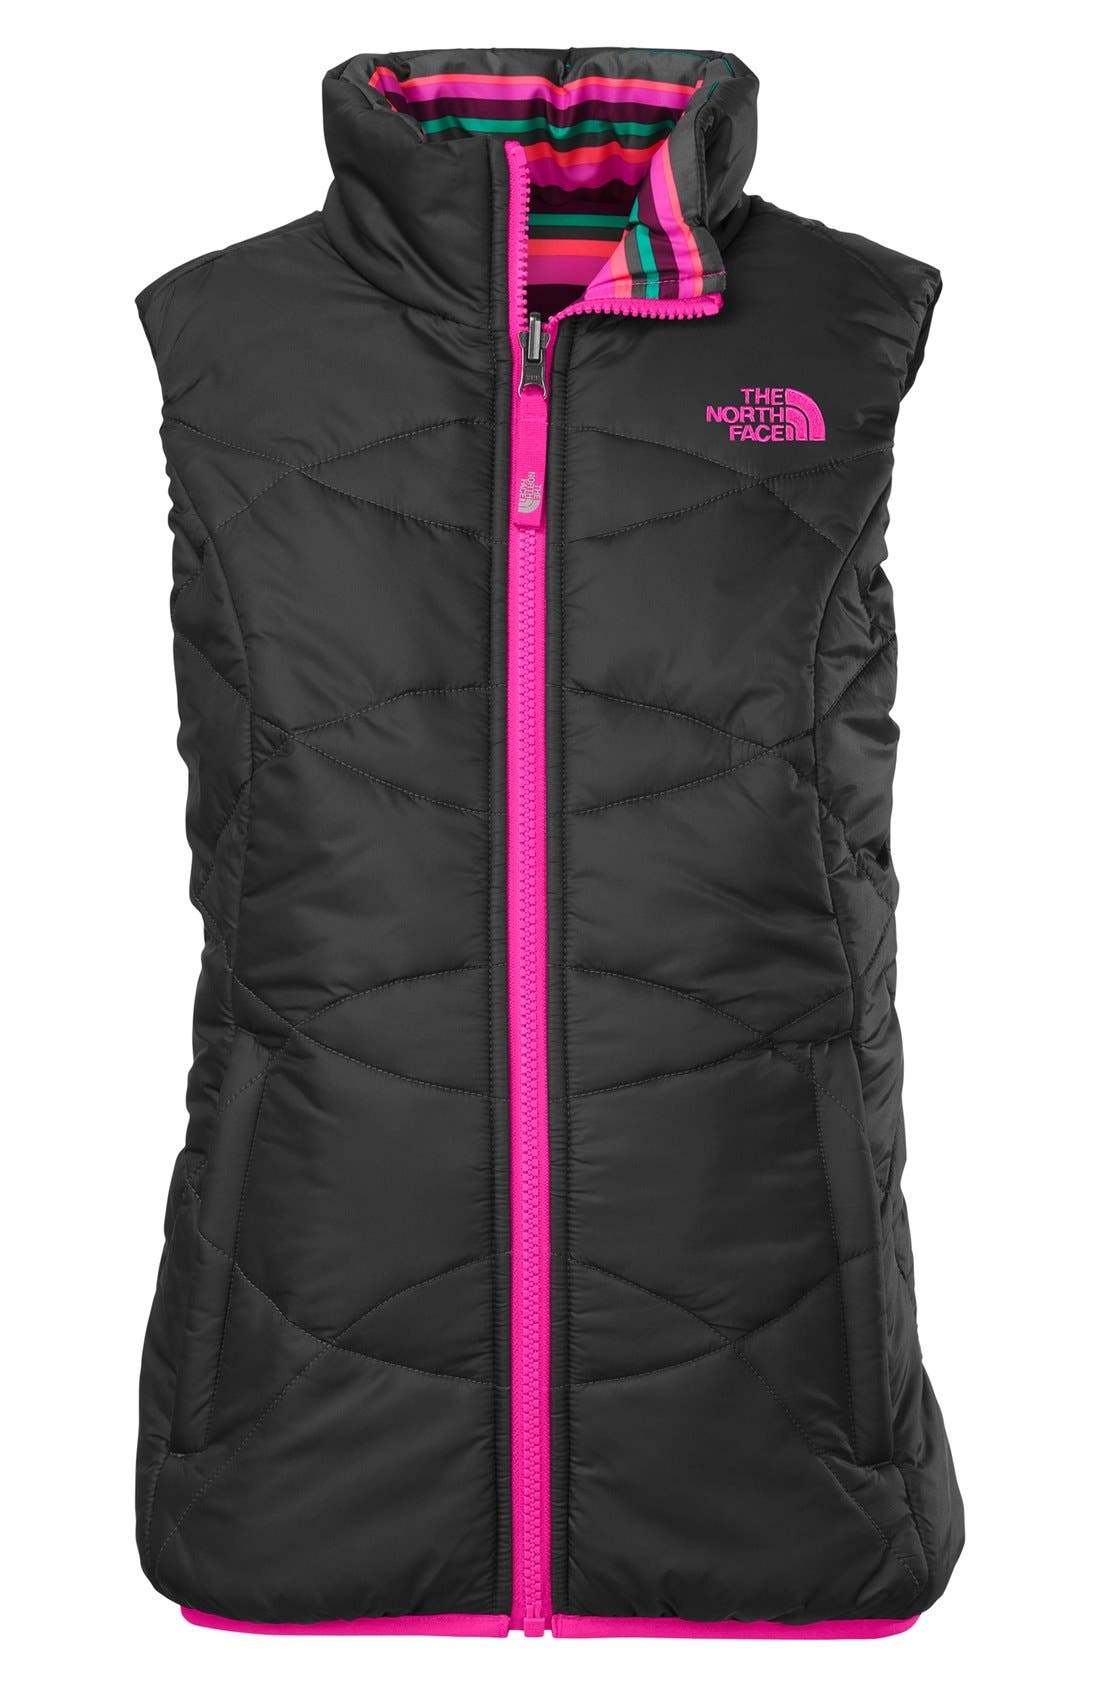 Alternate Image 1 Selected - The North Face 'Perrito' Reversible Waterproof Vest (Little Girls)